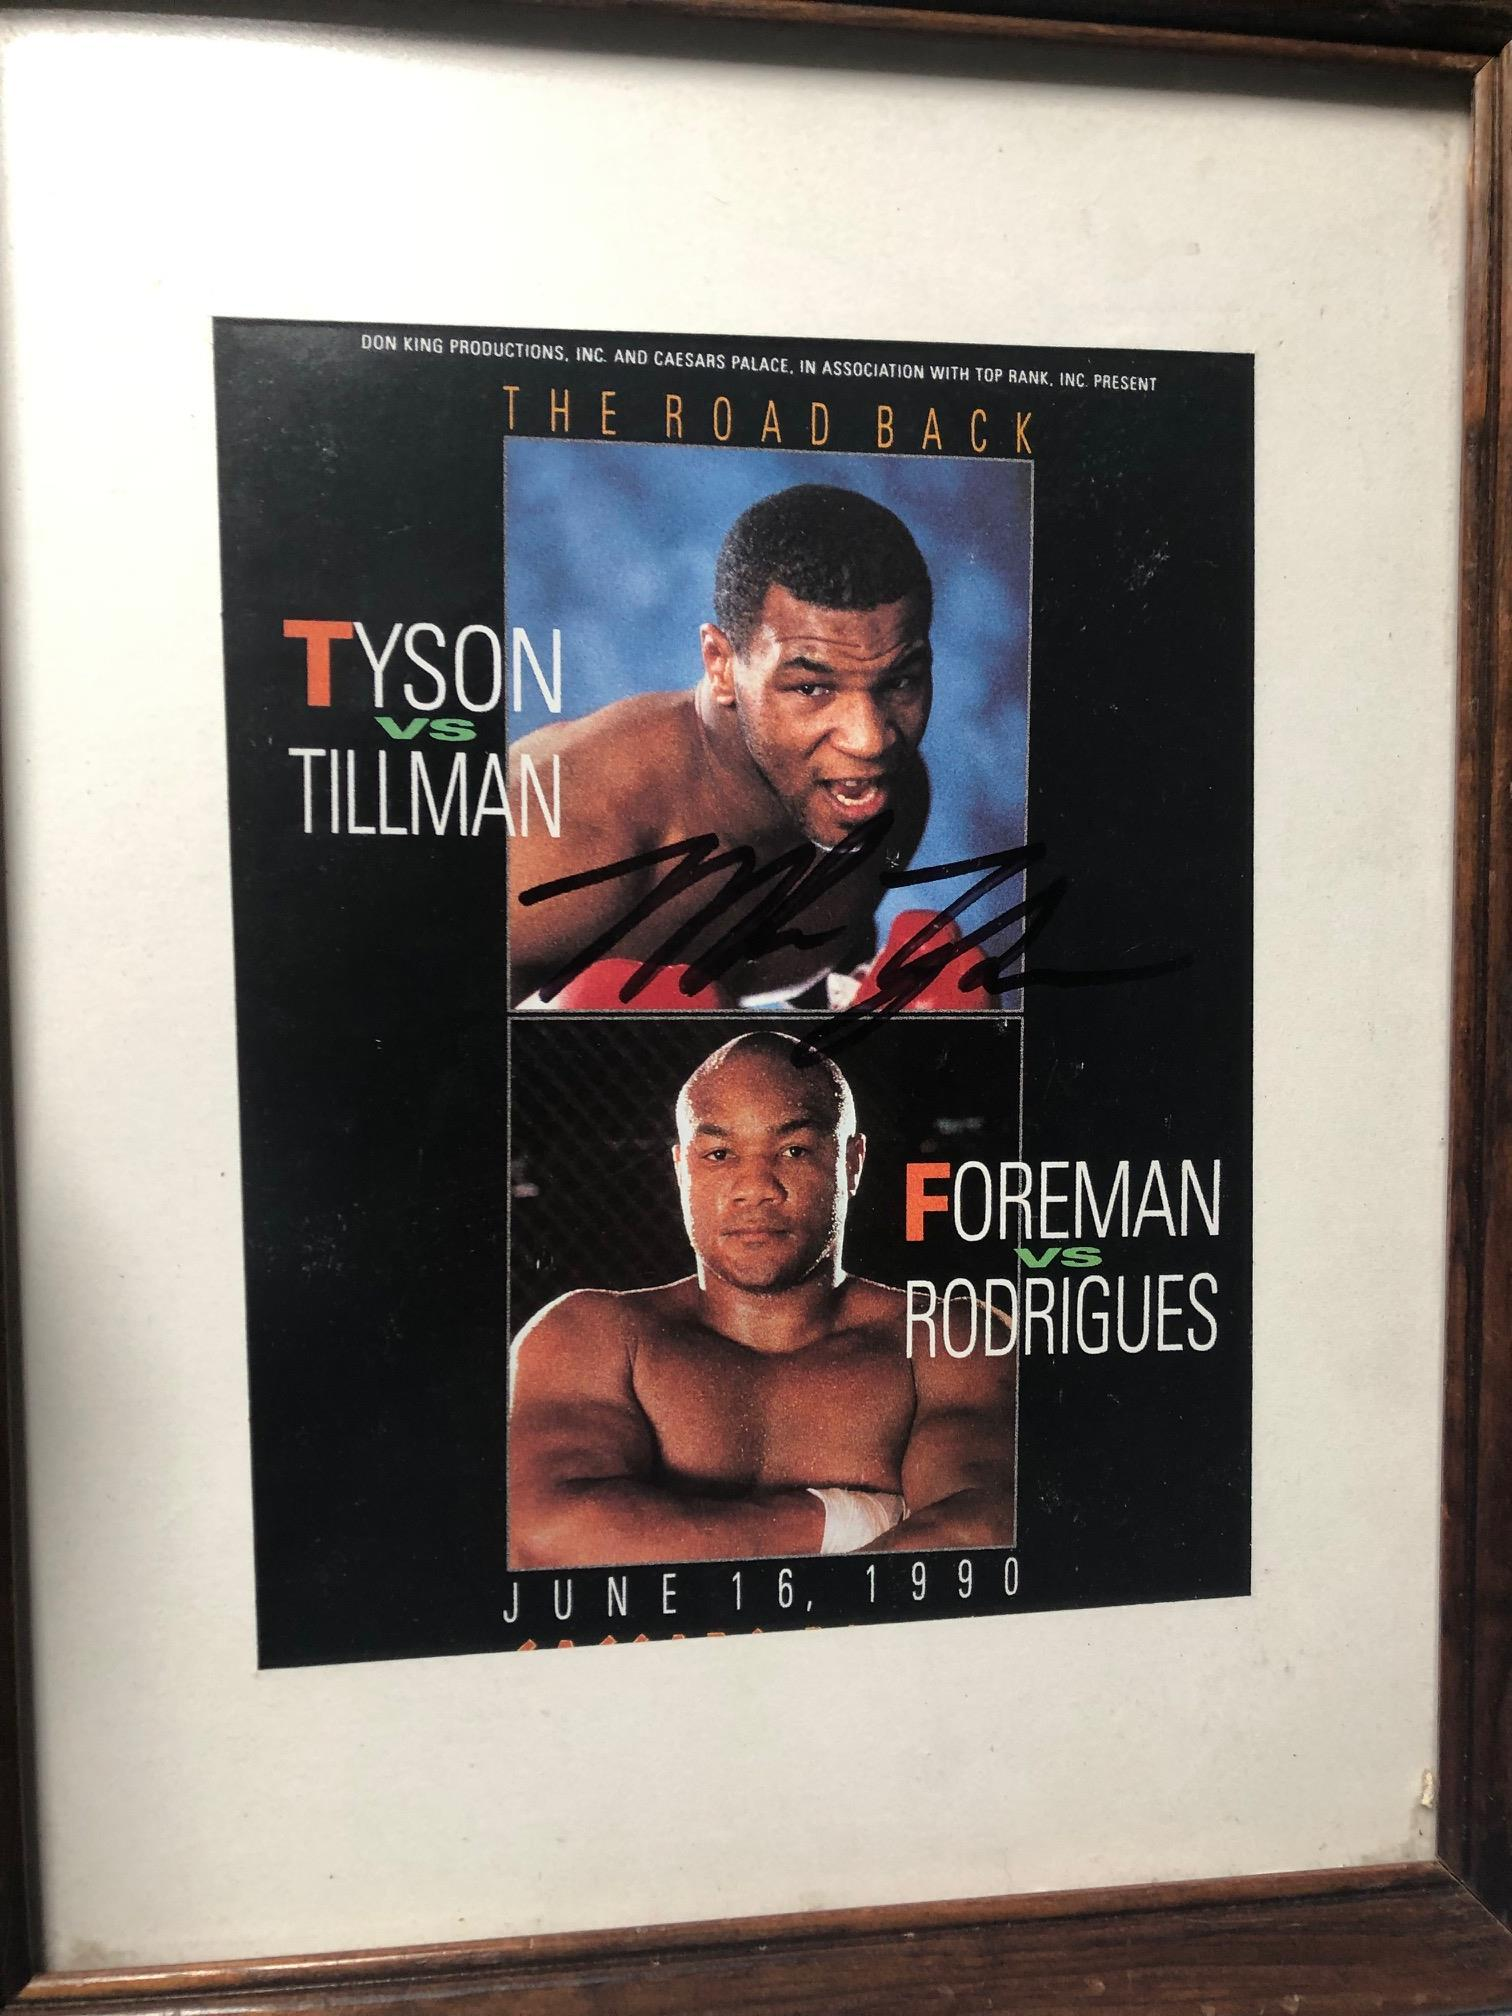 Framed large Mike Tyson autograph— With certificate of authenticity